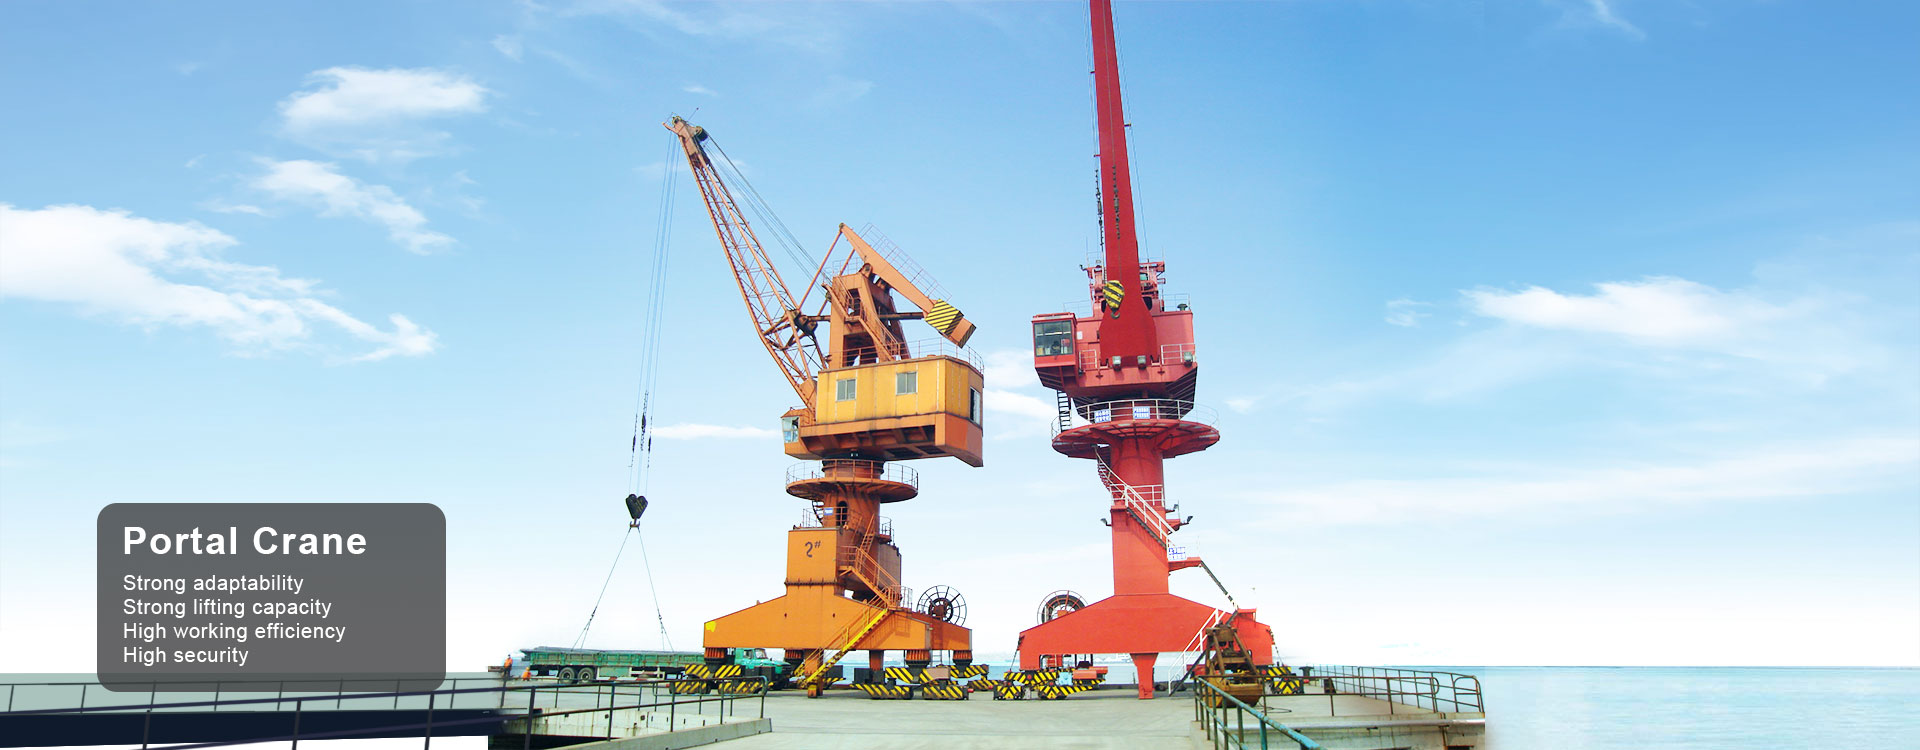 Weihua Group Portal Crane